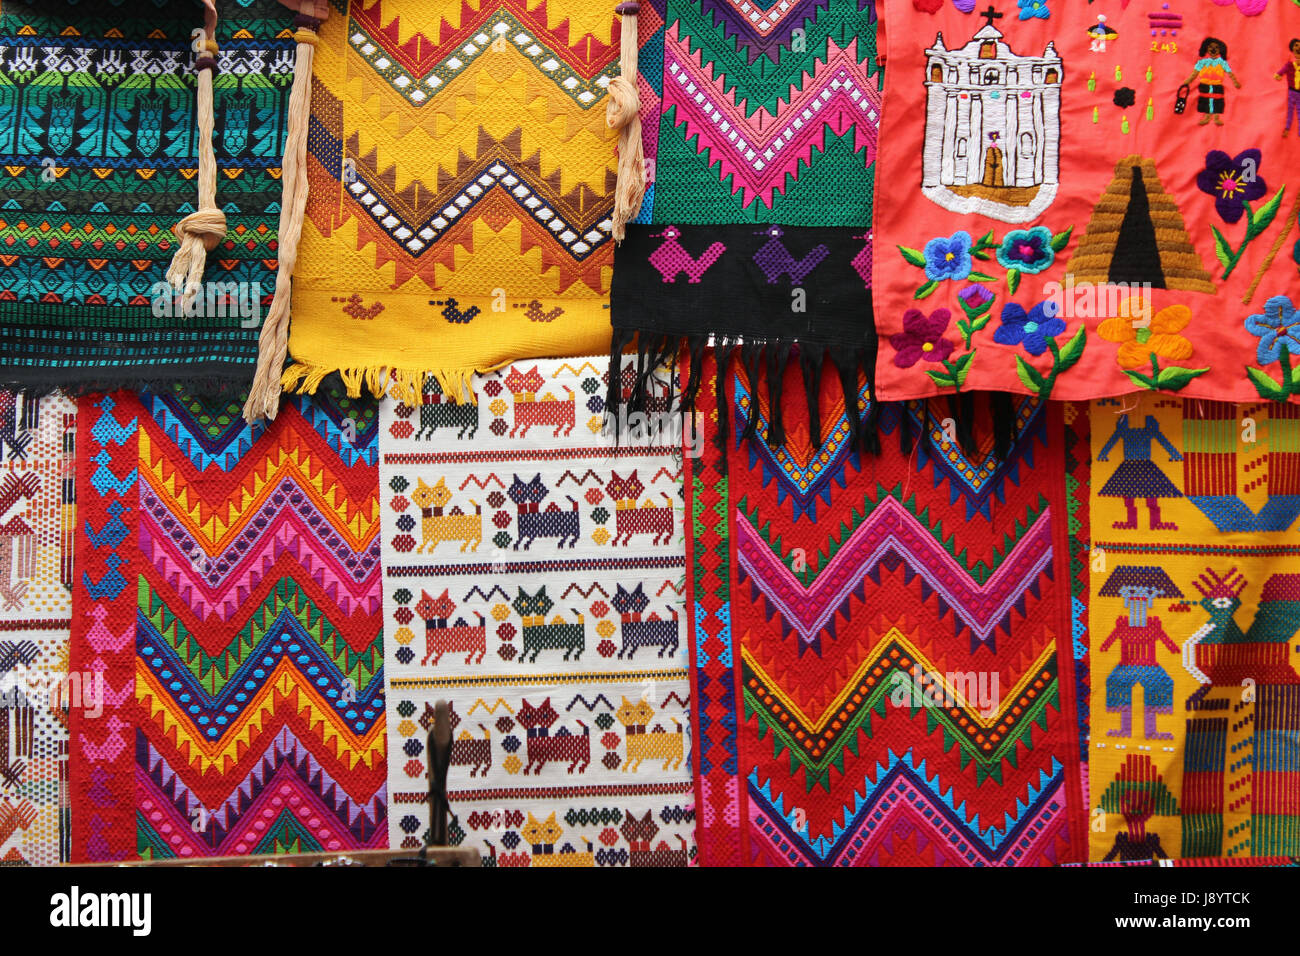 Textiles typical of Guatemala, handmade by Guatemalan craftsmen, Of daily use in the Mayan community - Stock Image